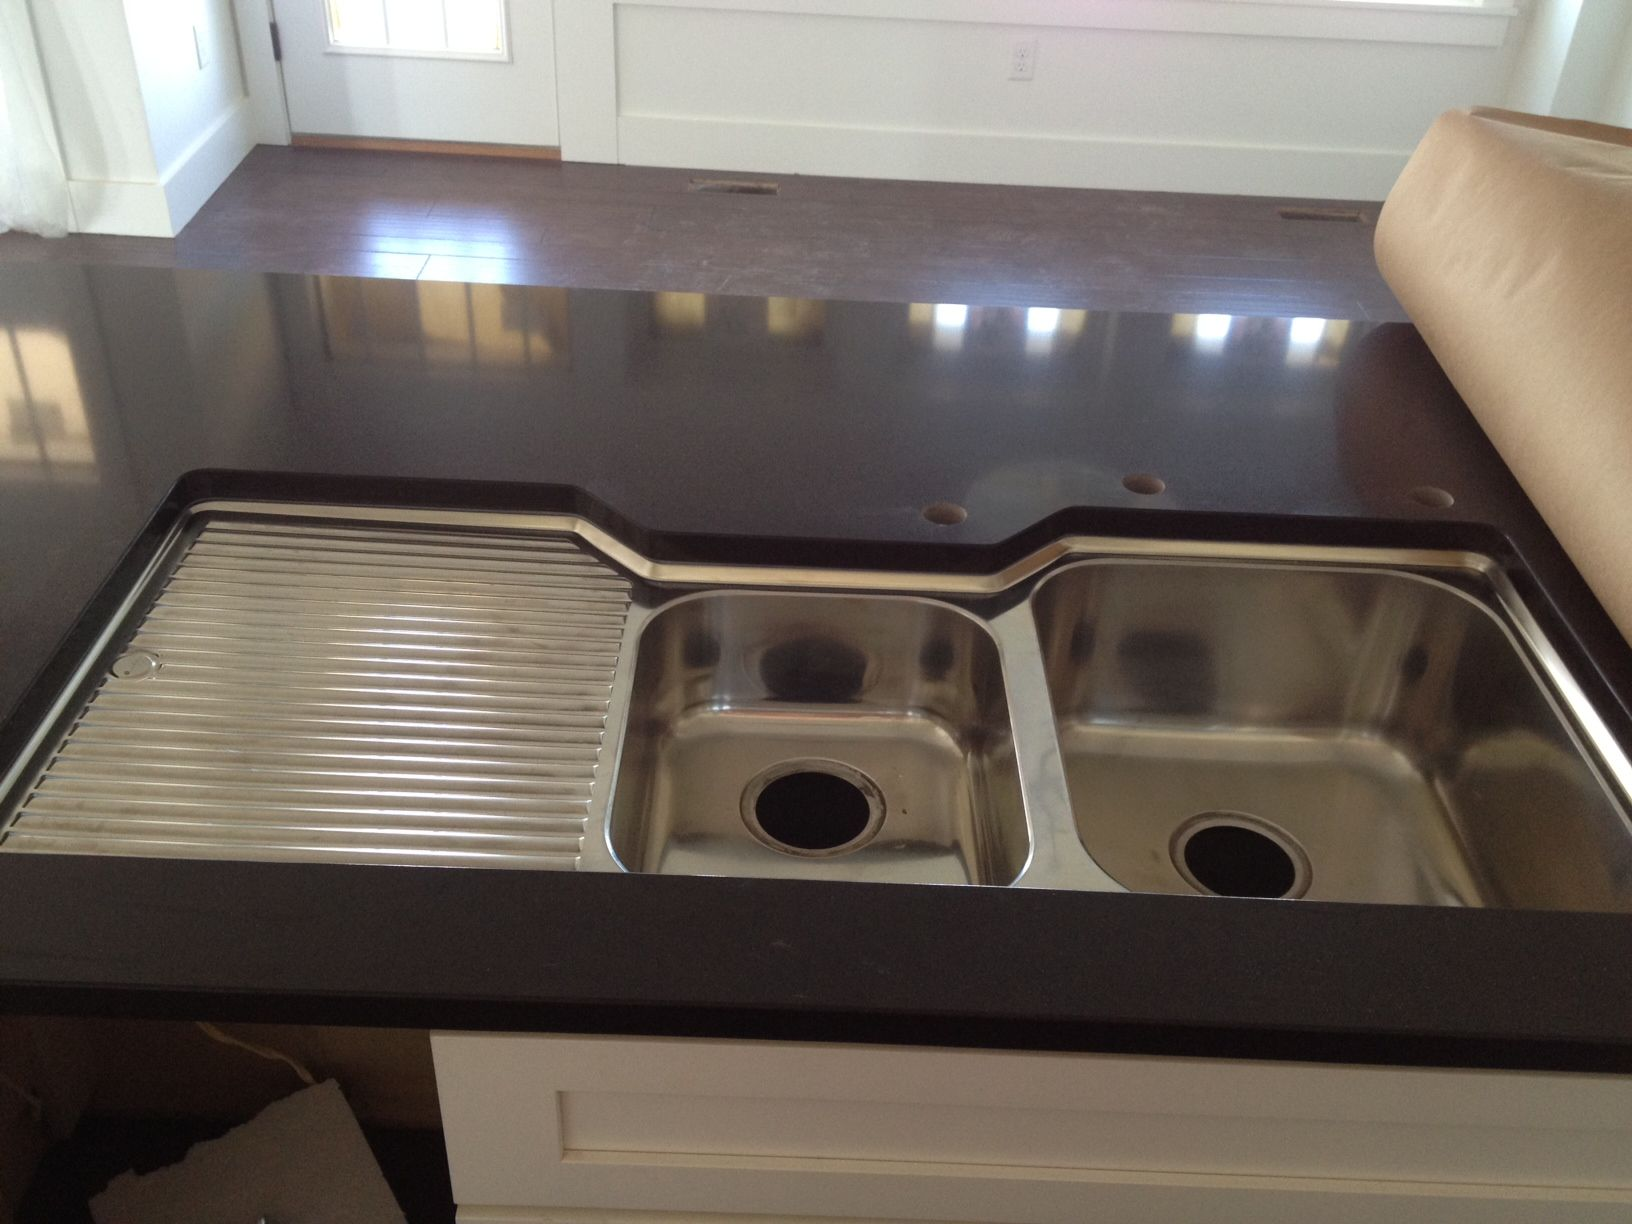 kitchen sinks with drainboards eco friendly cabinets double basin sink left drainboard oliveri bowl